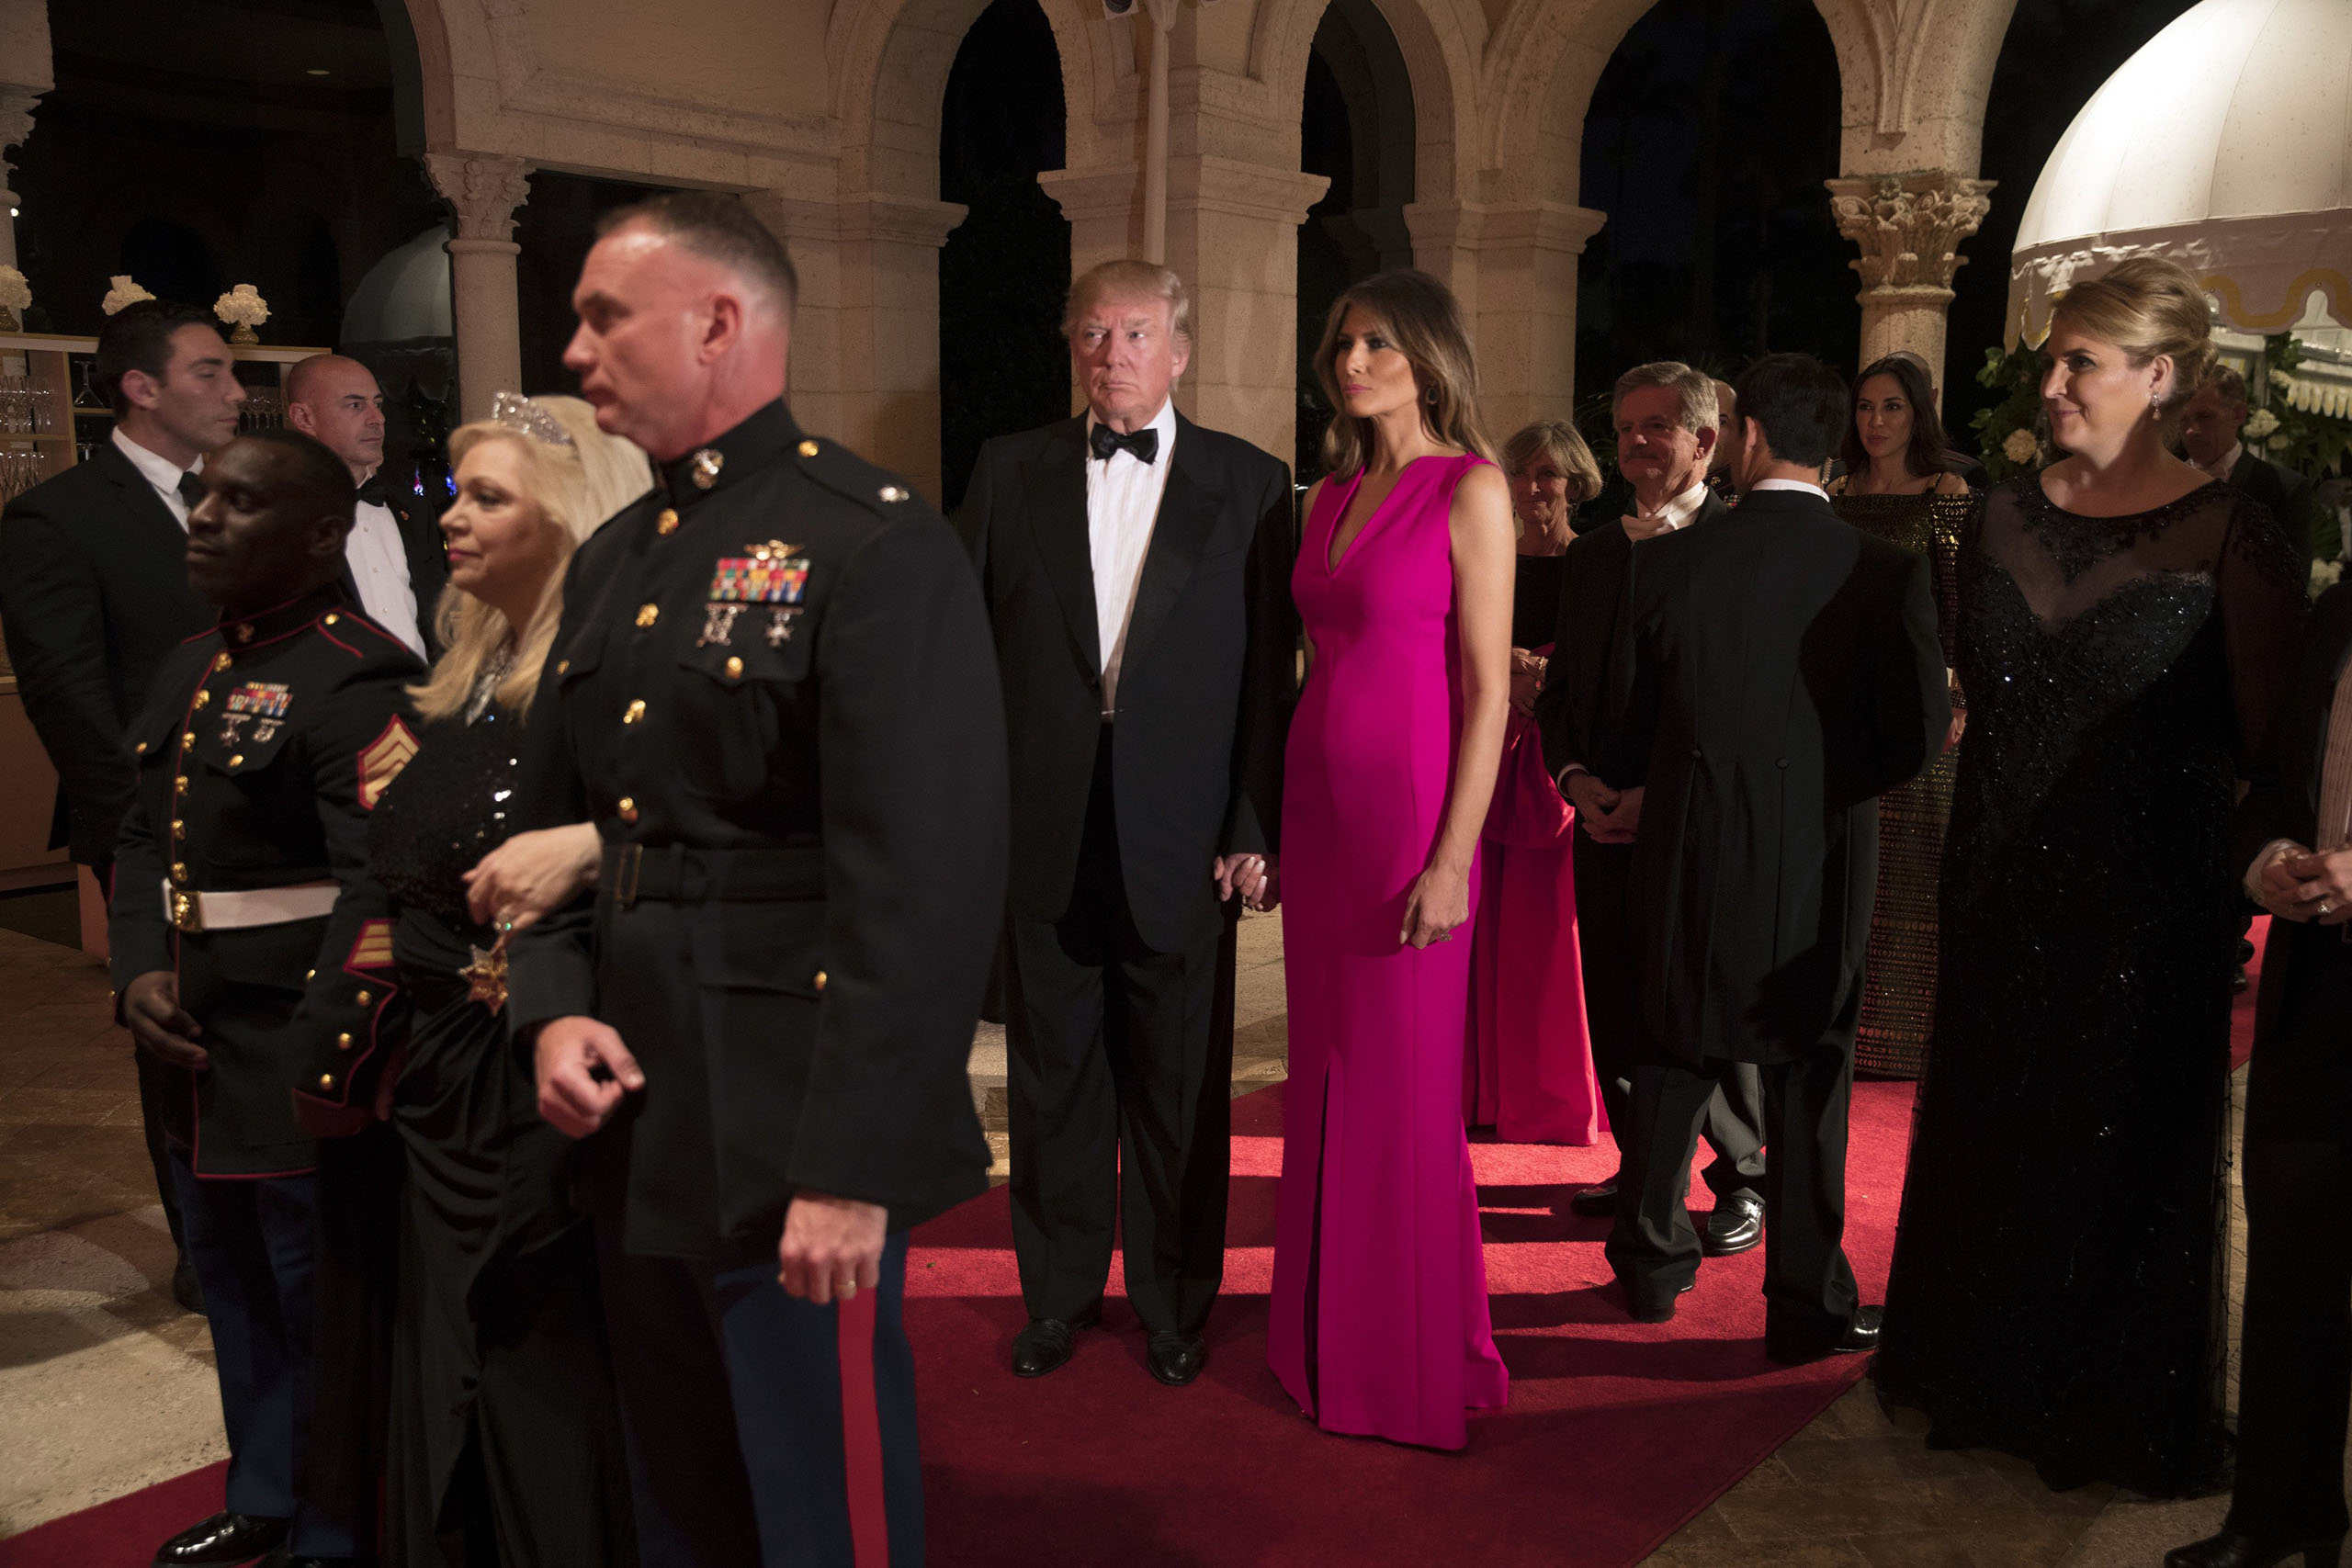 President Donald Trump and first lady Melania Trump arrive for a gala for the American Red Cross, in the ballroom of Mar-a-Lago, in Palm Beach, on Feb. 4, 2017.